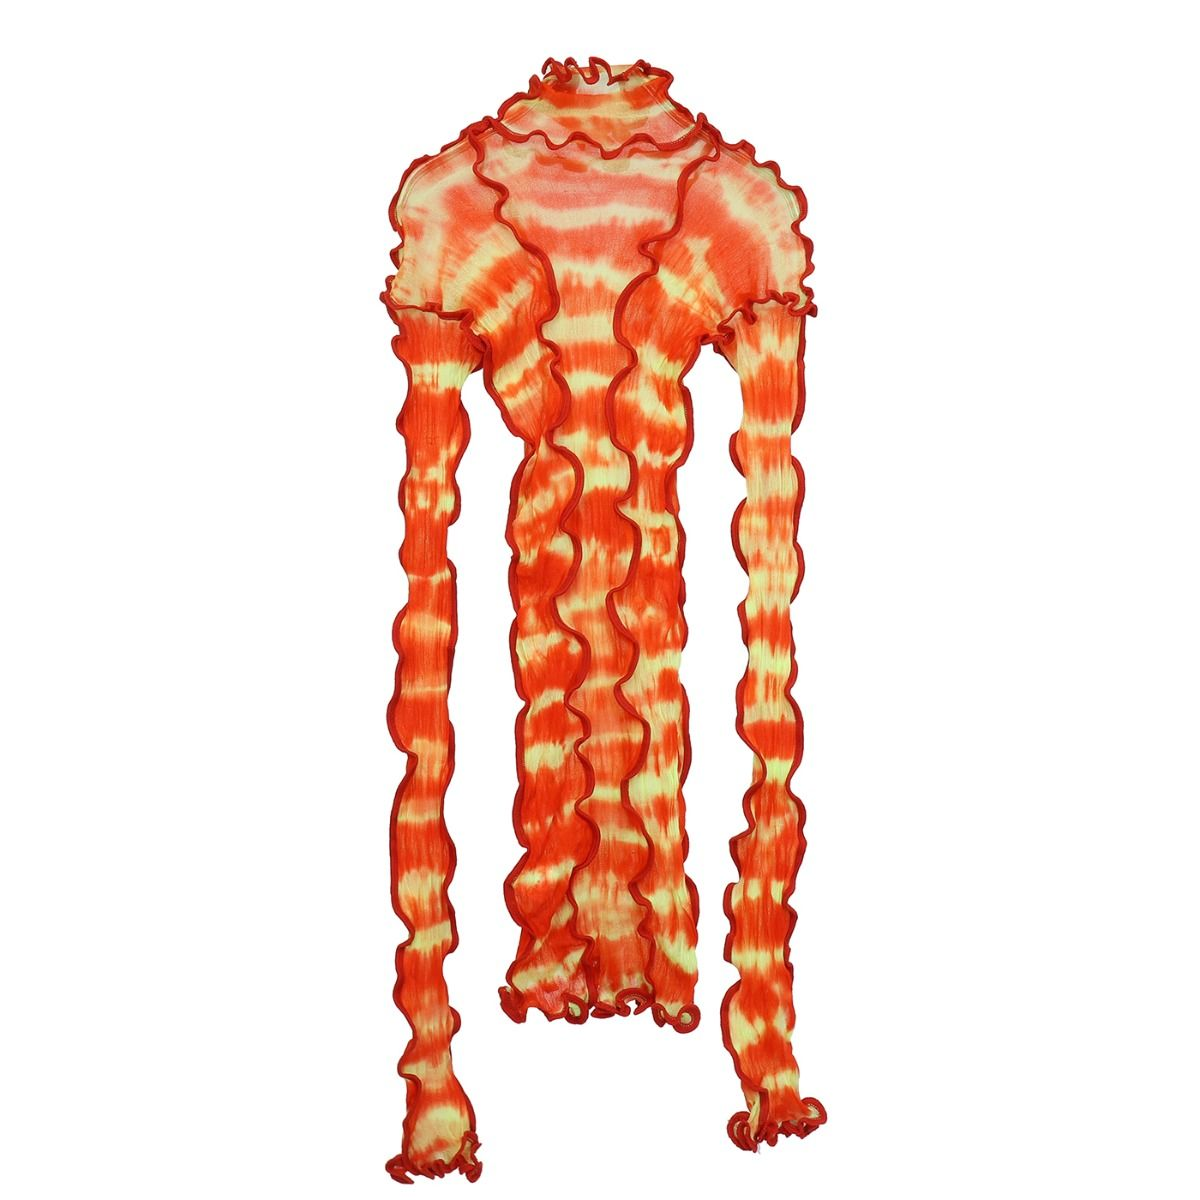 ASAI HOTWOK/ASAICON PATCHWORK STRETCH TIE DYE SEAMED / FLAME PA RED&ORANGE